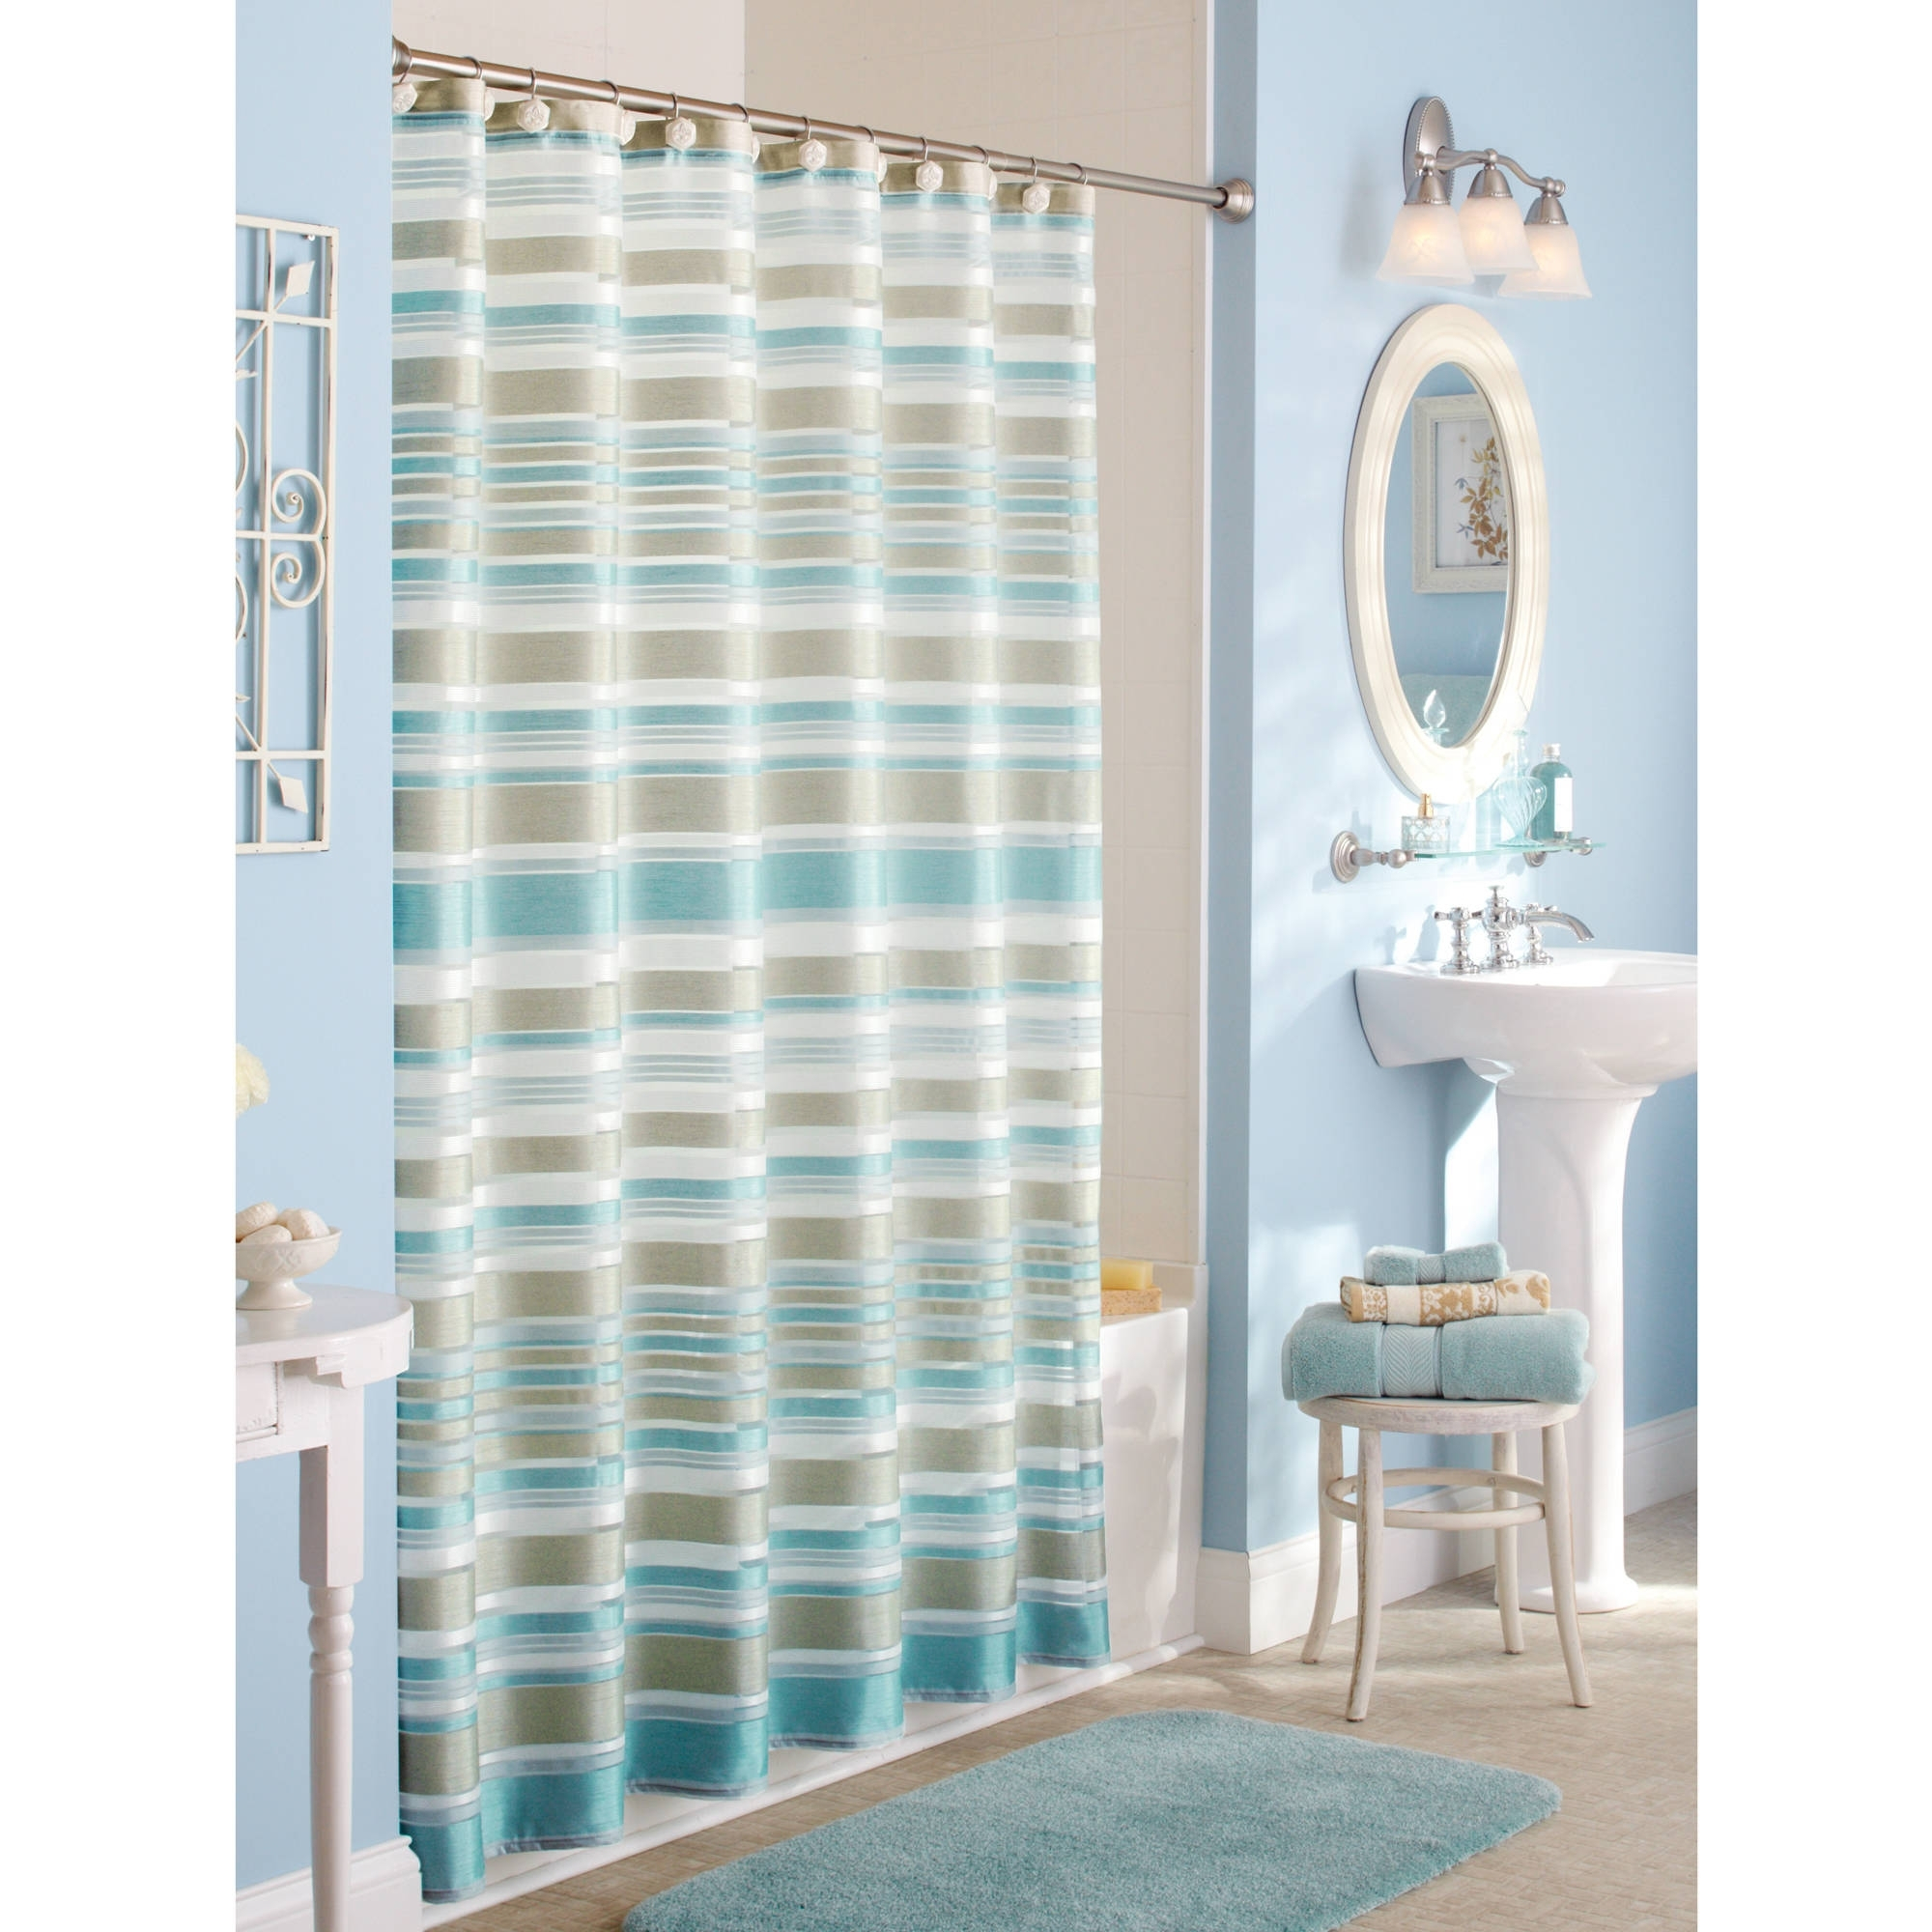 Solid Light Gray Shower Curtain Shower Curtain Ideas regarding dimensions 2000 X 2000